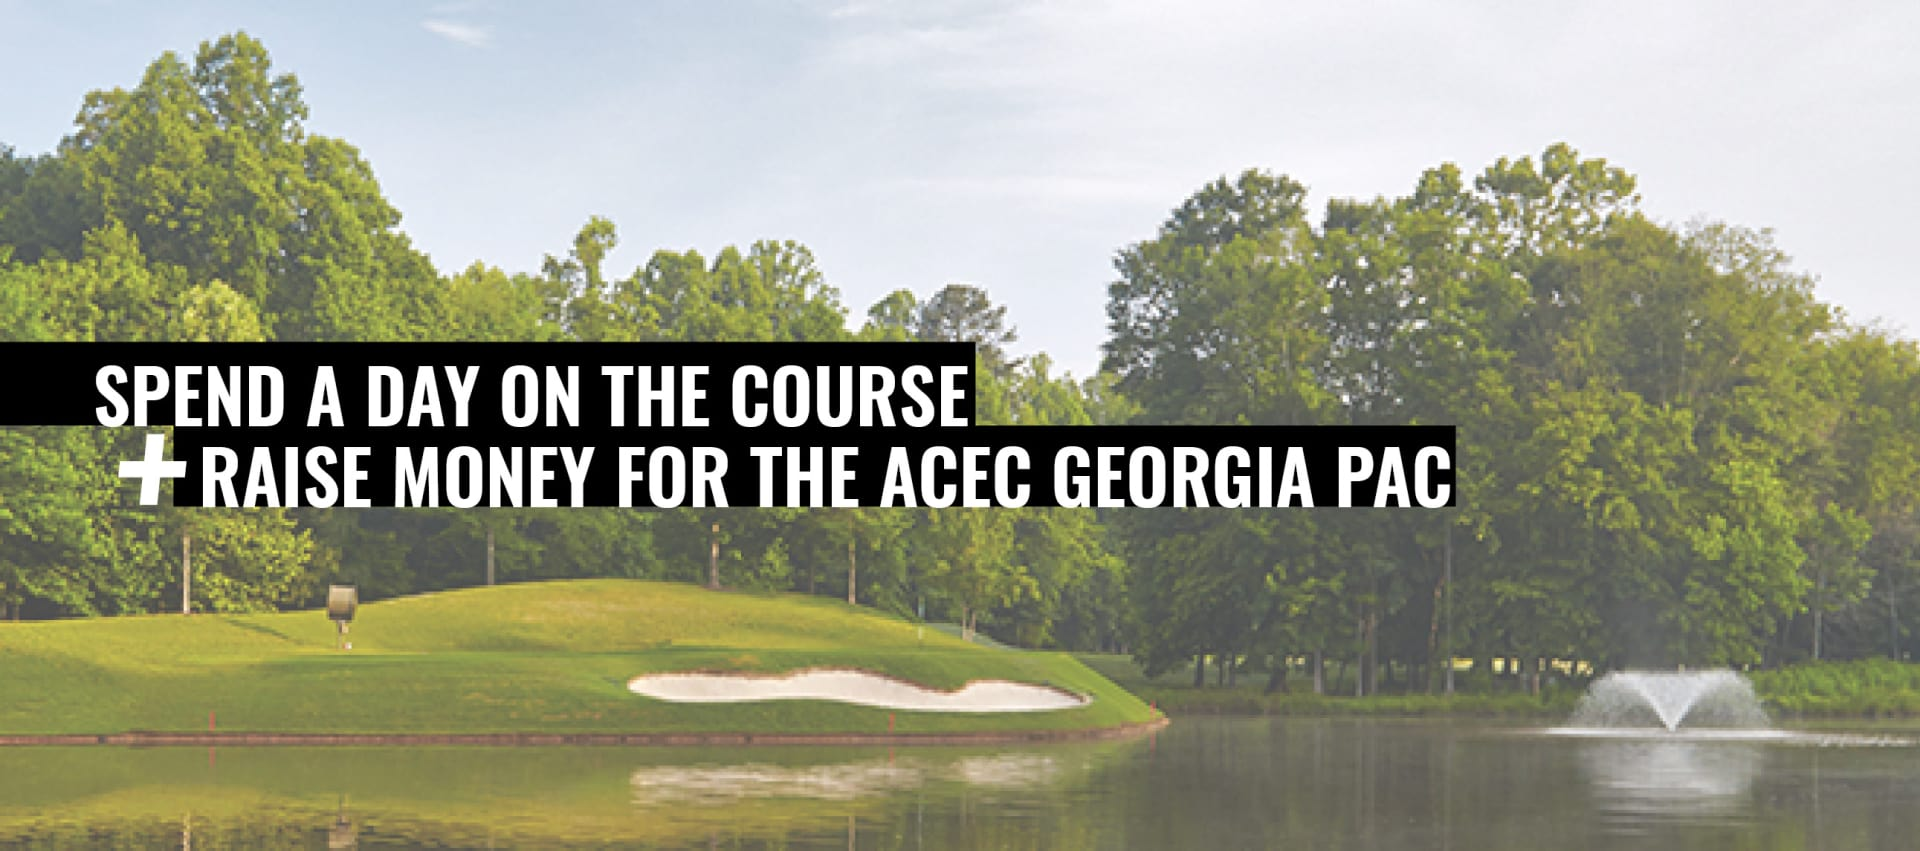 Spend a Day on the Course + Raise Money for the ACEC Georgia PAC